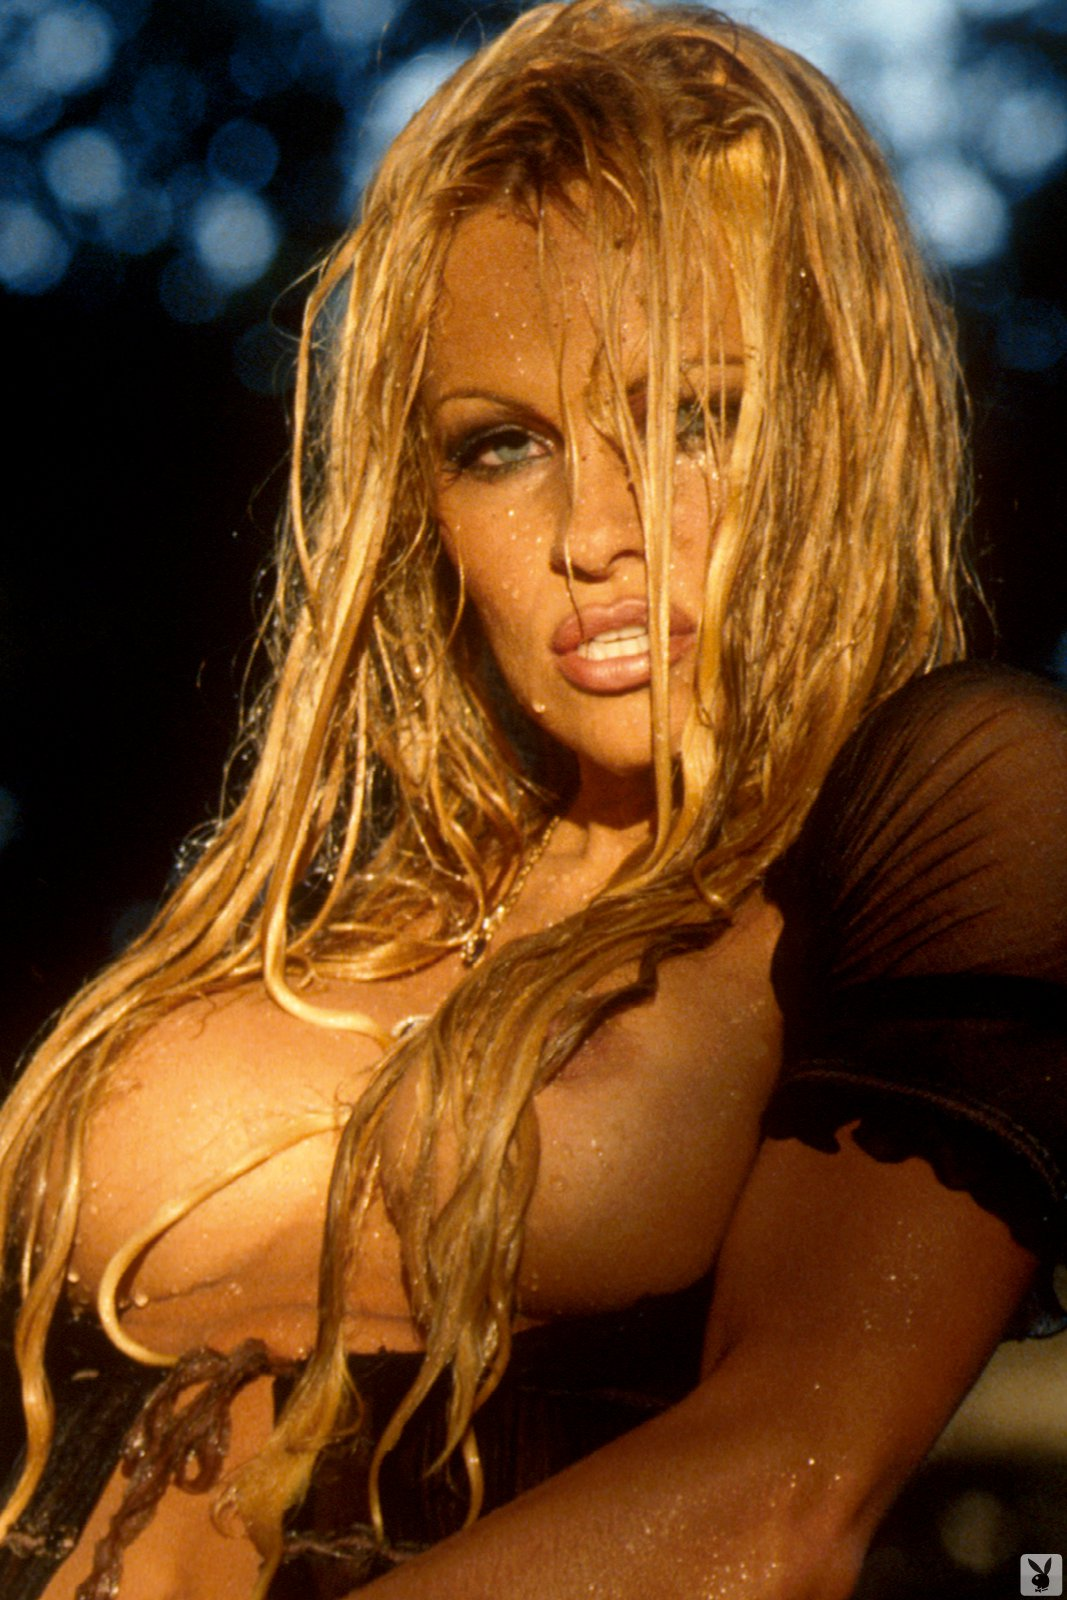 pamela anderson playboy nude naked wet pambition.com%252B%252525284%25252529 This week's naturally busty babe is playing with her big natural tits!